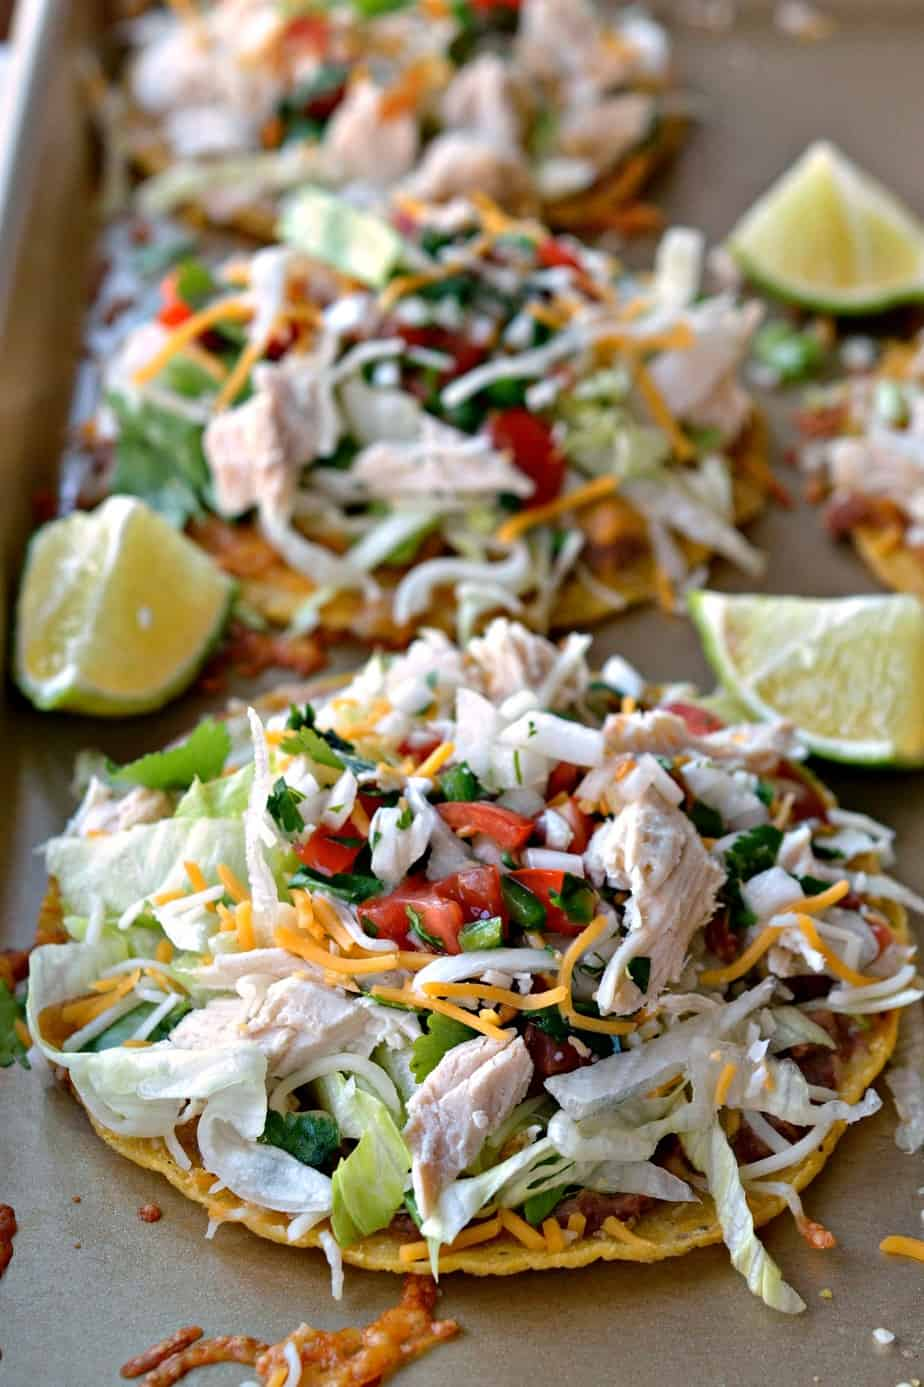 These easy Chicken Tostadas are a cinch to put together using ready to go tostada shells and rotisserie chicken.